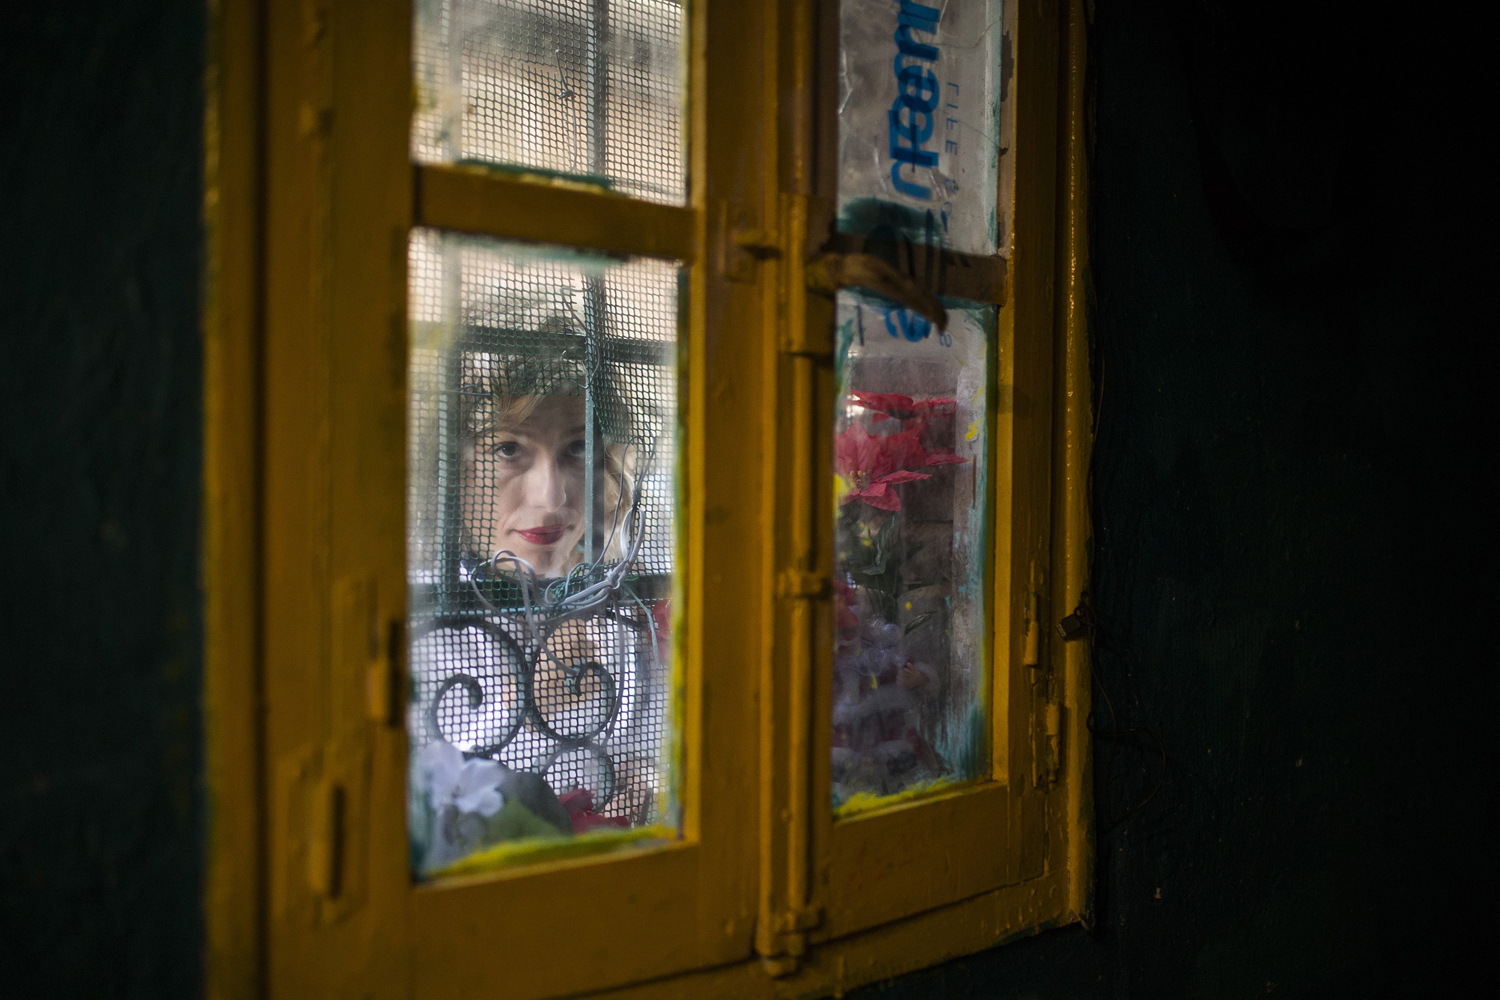 Jun. 17, 2014.  A neighbour of Gabriela Ovid checks to see if the family are still in the house as she arrives to help them during Ovid's eviction in Madrid, Spain.